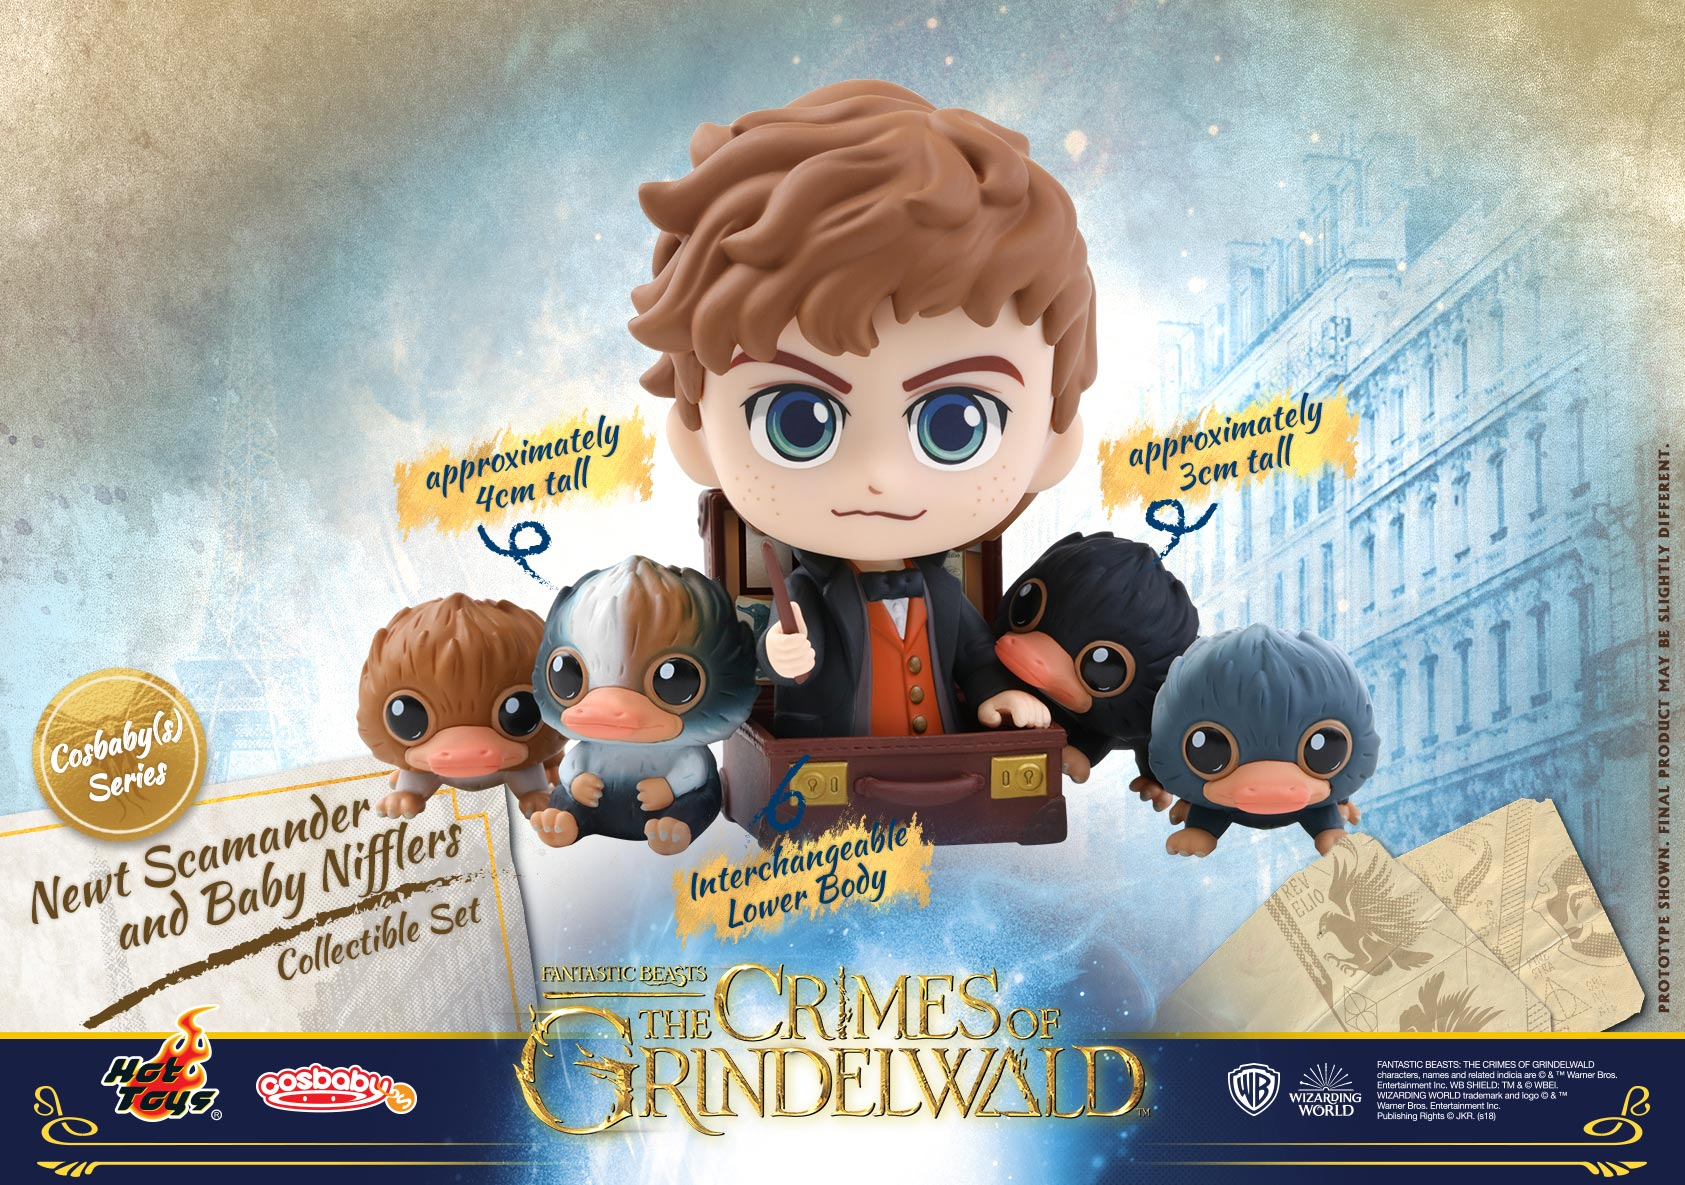 Hot-Toys---Fantastic-Beasts-2---Newt-Scamander-and-Baby-Nifflers-Cosbaby-(S)-Collectible-Set_PR1